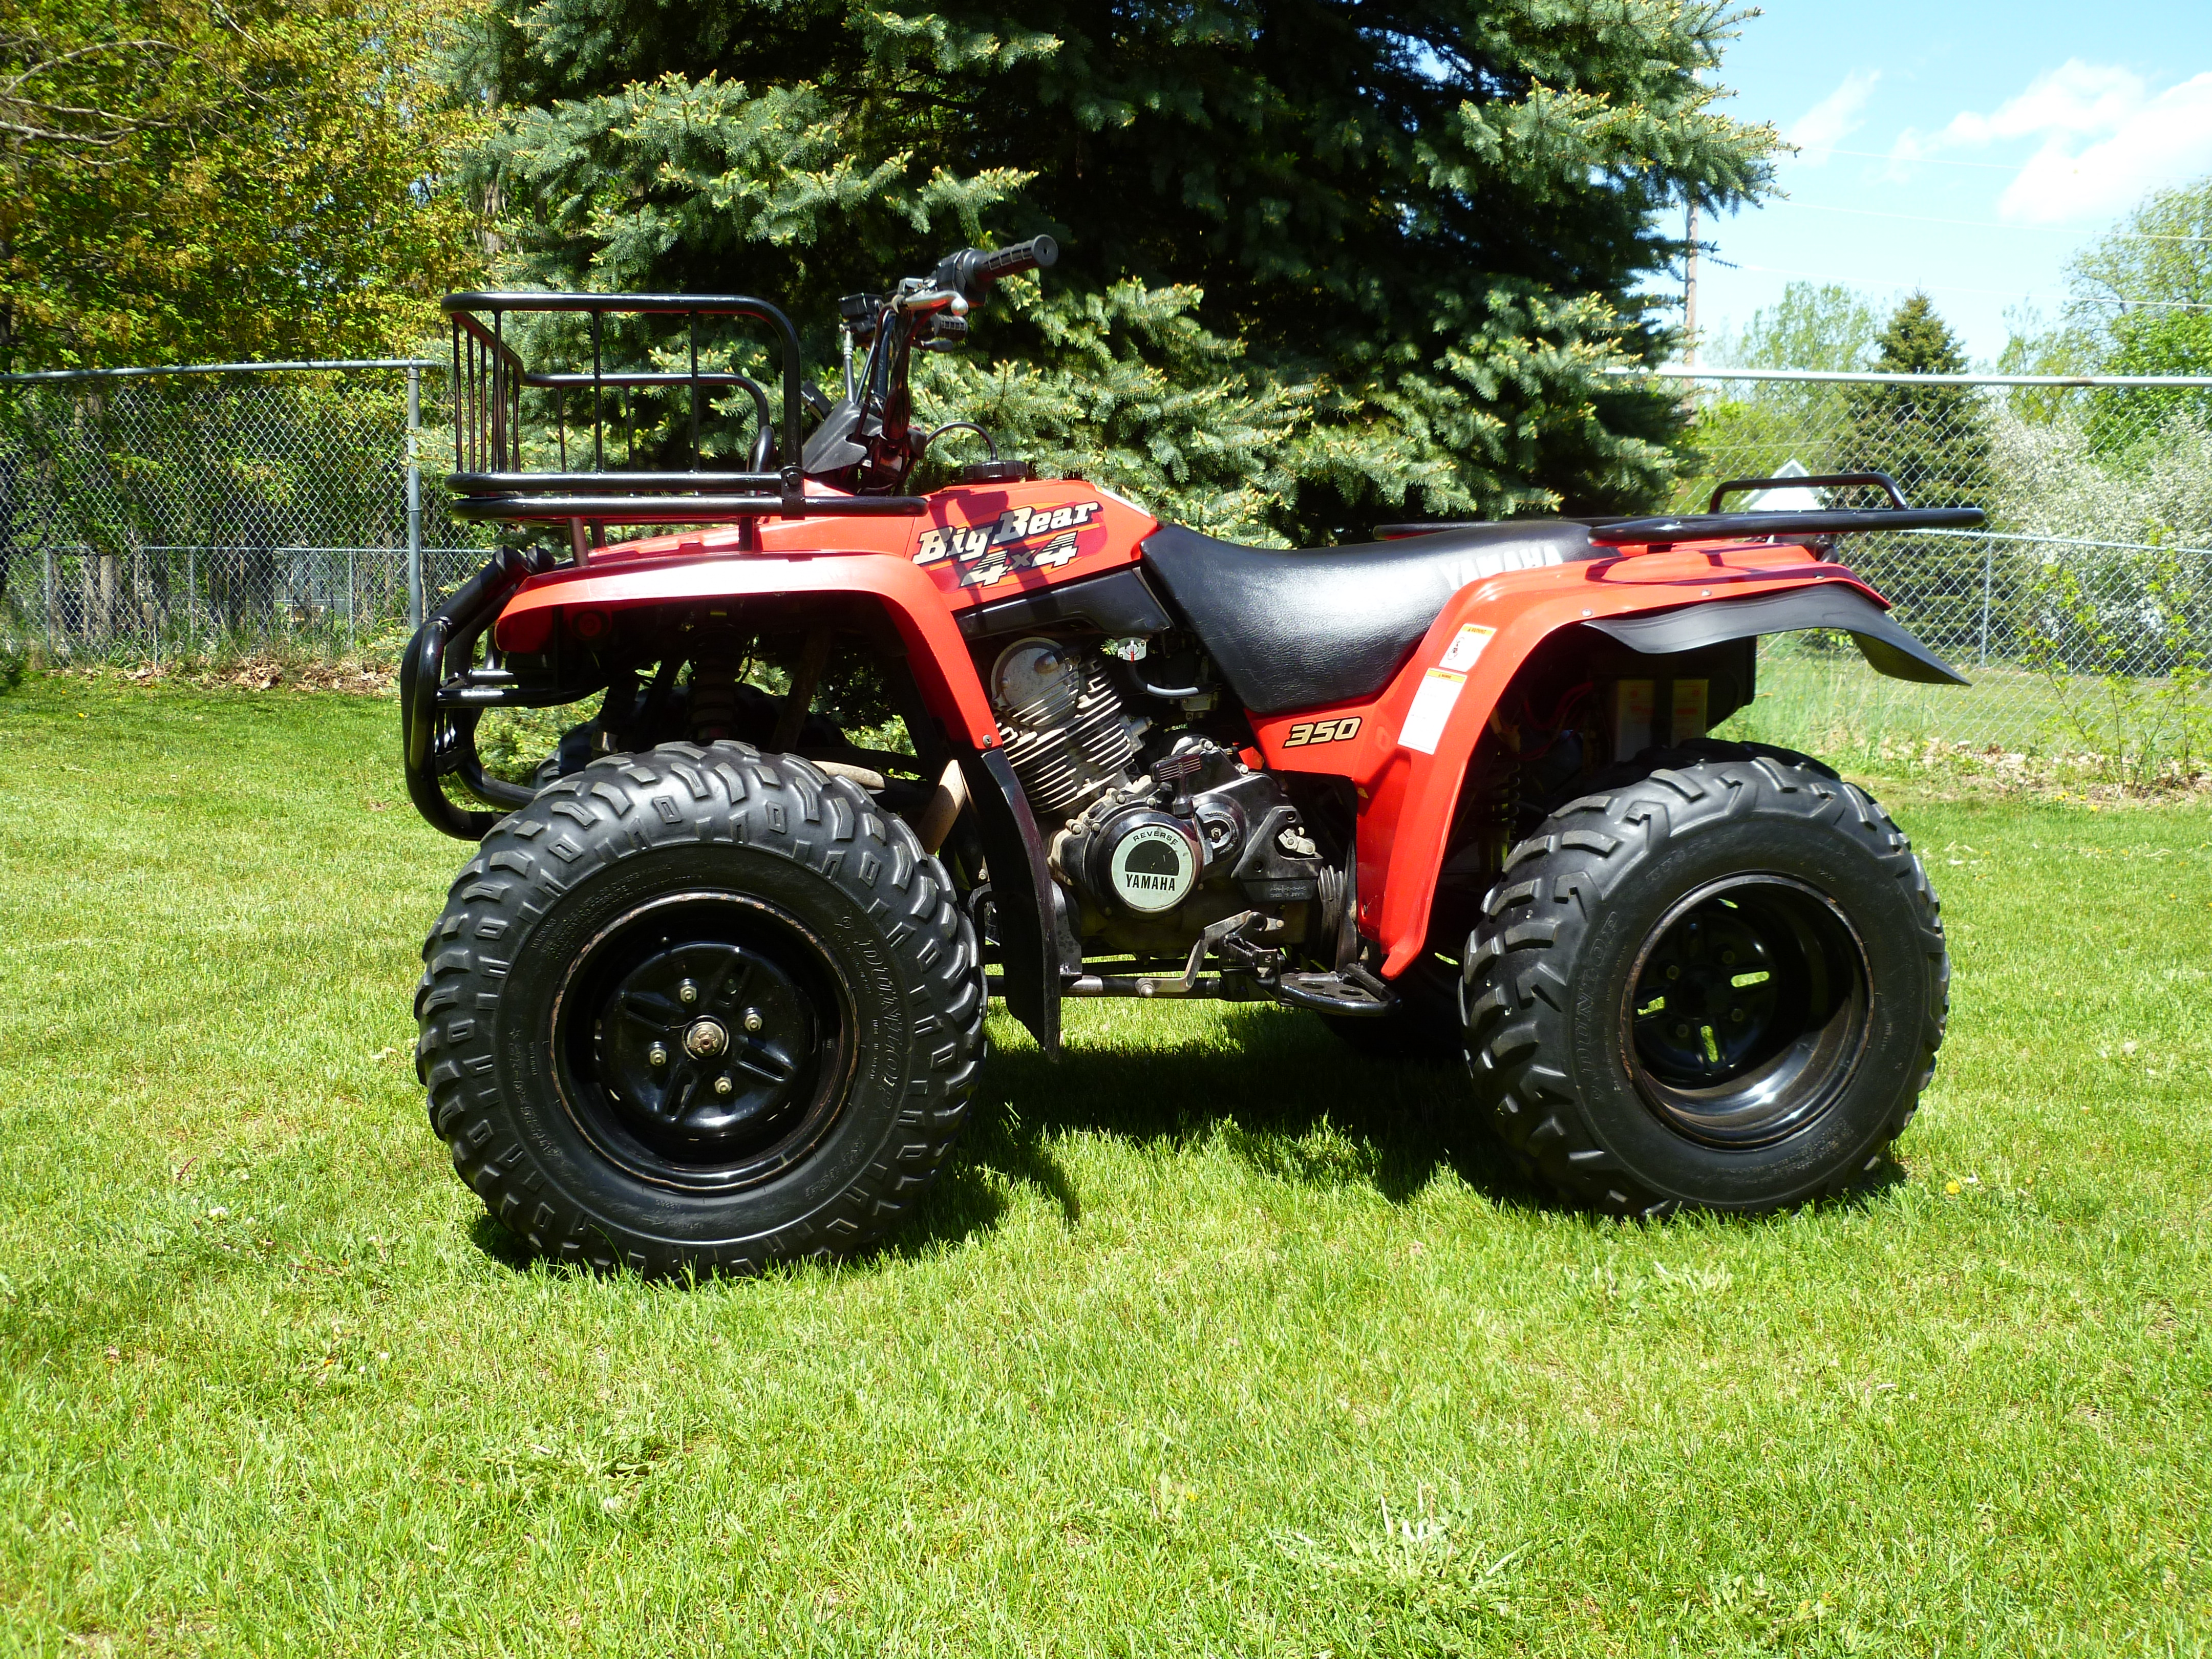 Big bear year identification very bizarre yamaha for What year is my yamaha atv